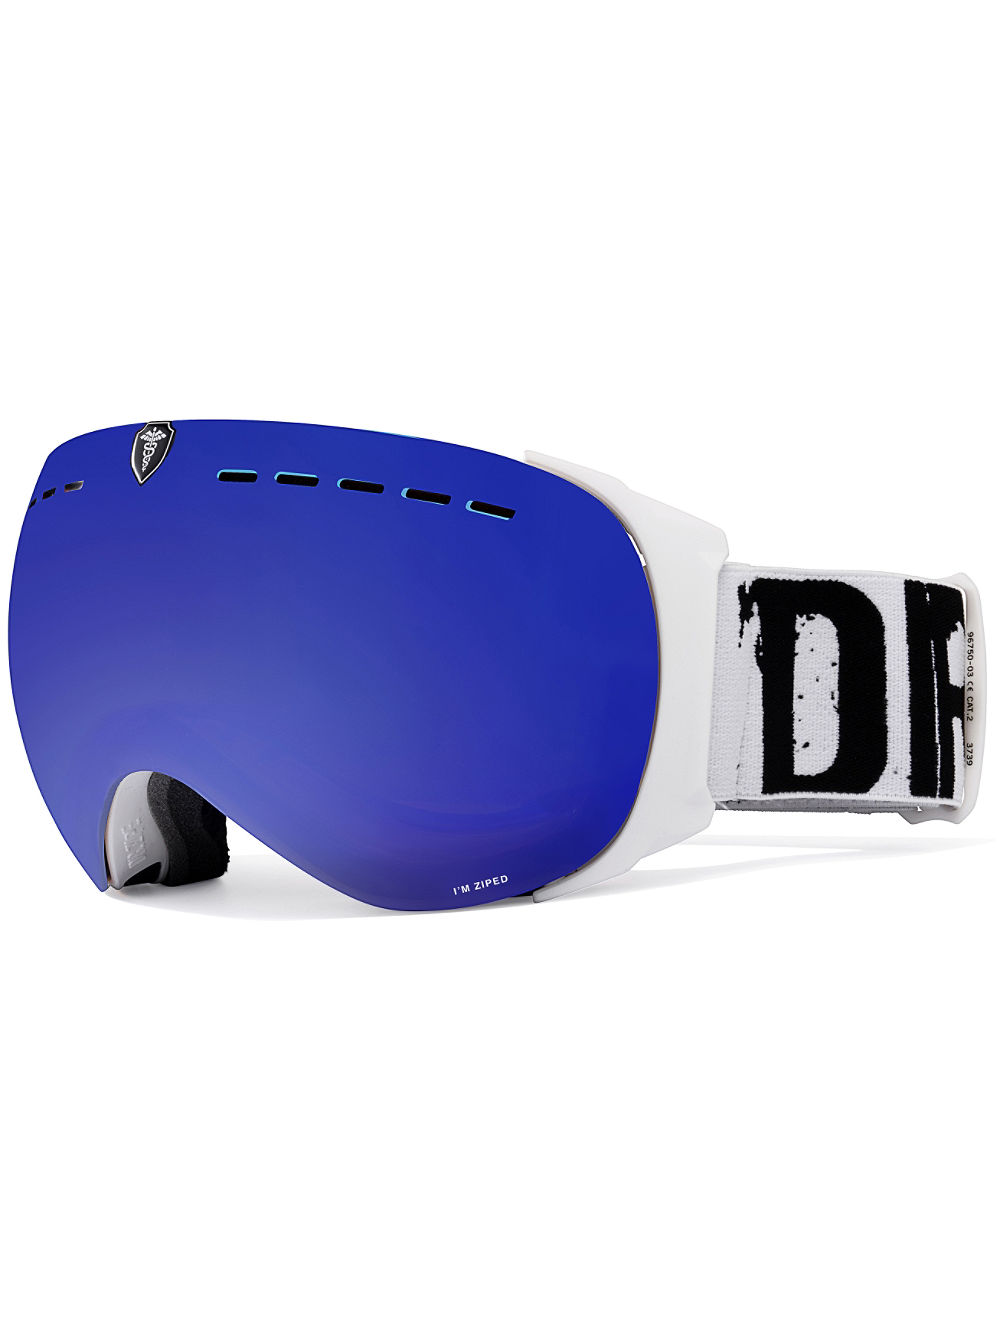 Headmaster Level 7 Matt White/White Black Goggle